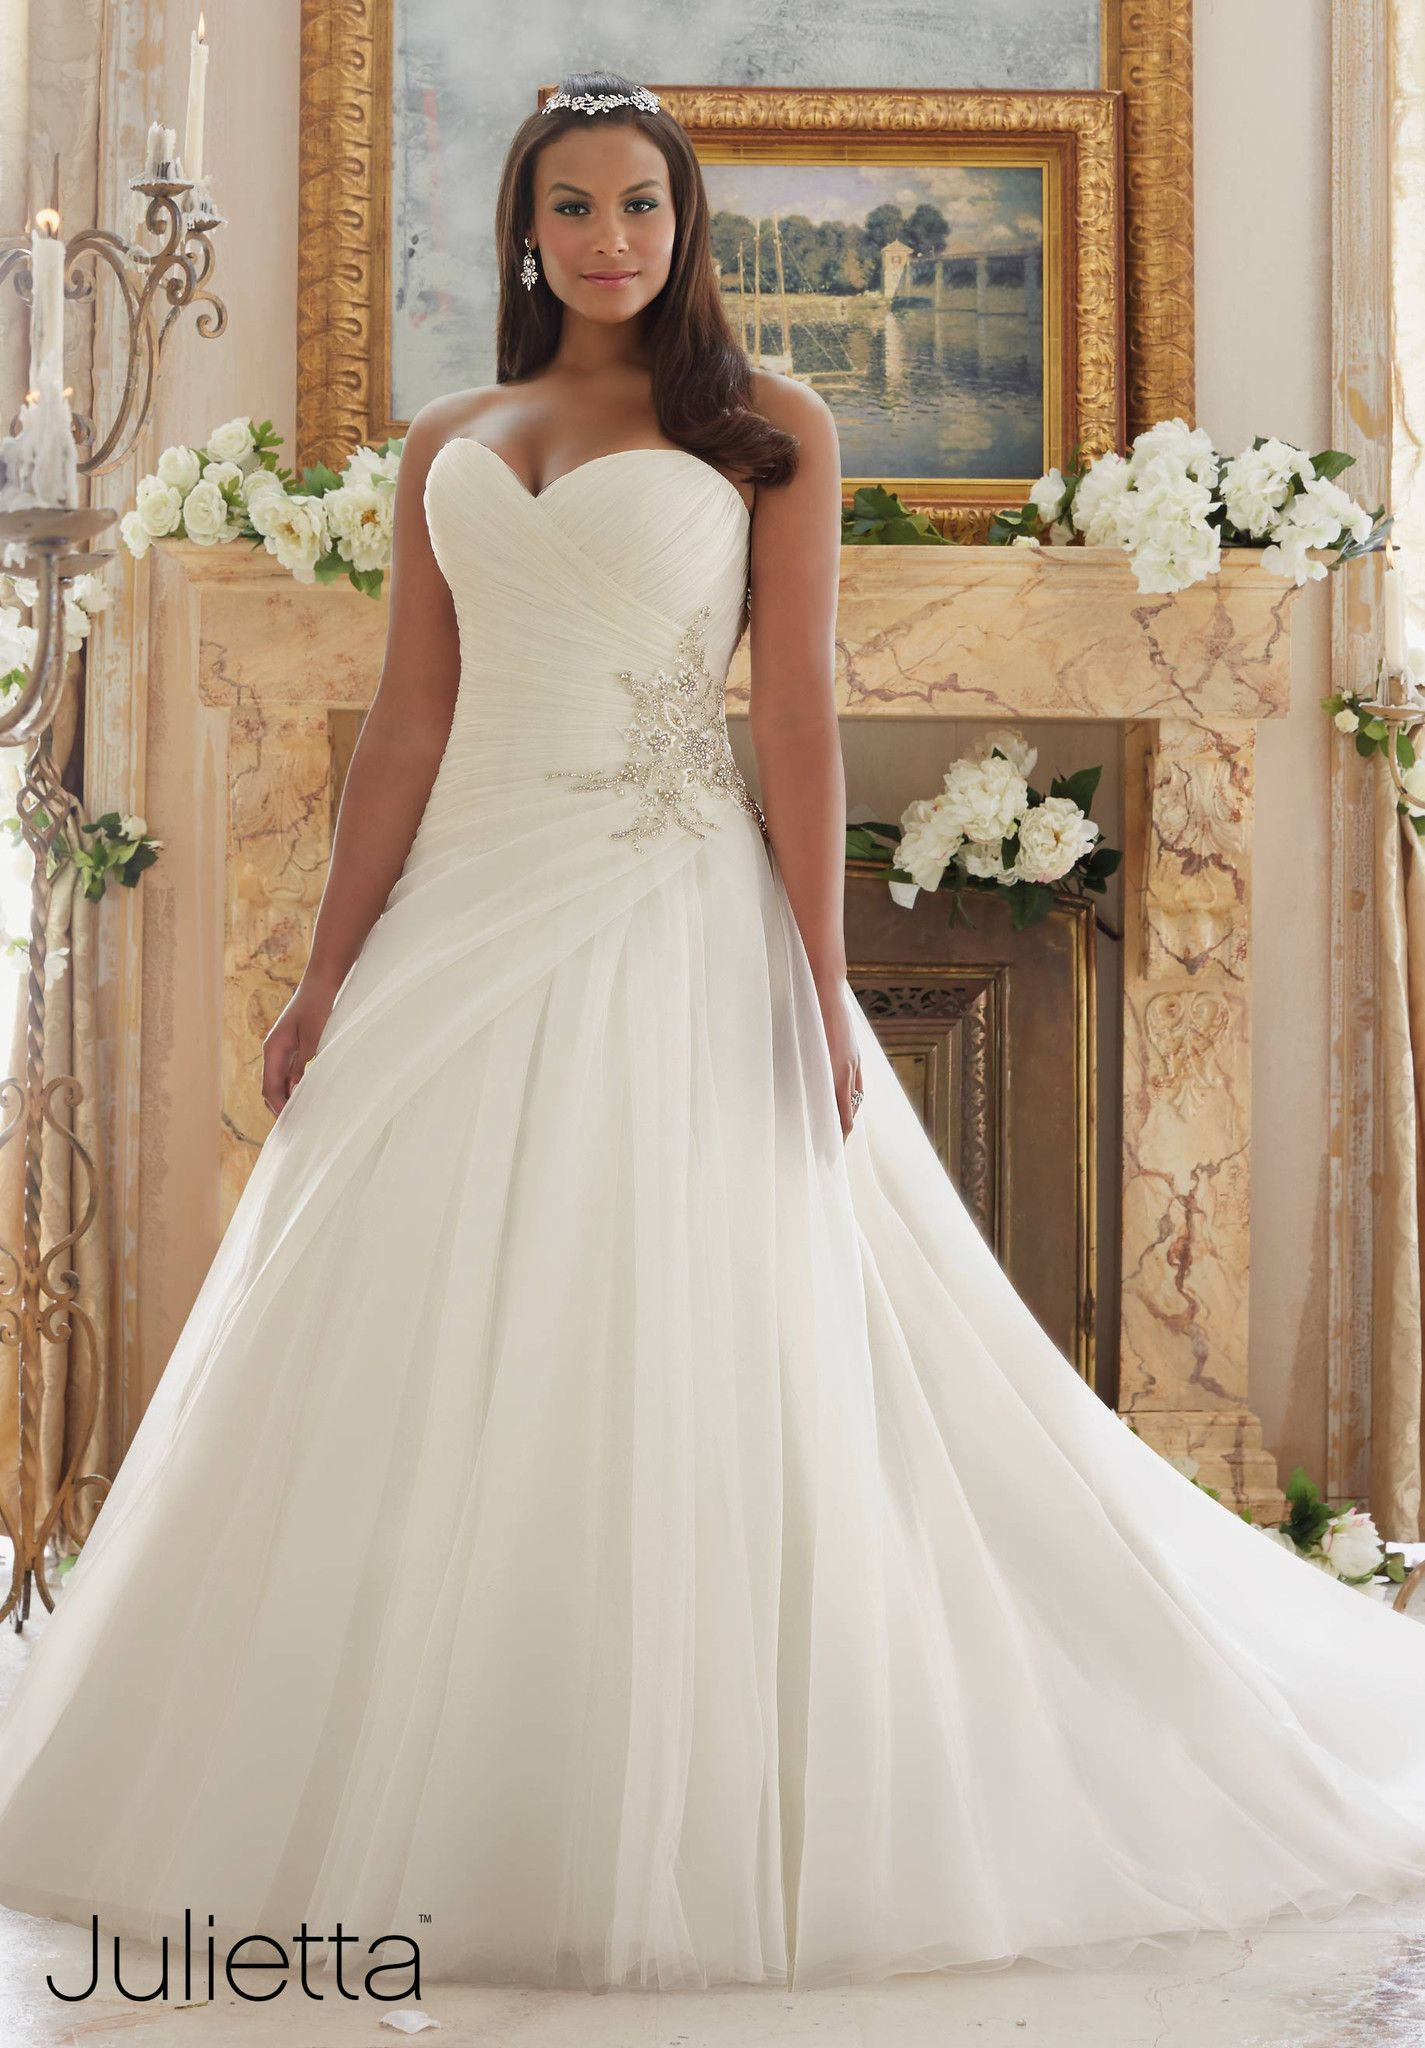 Julietta all dressed up bridal gown bridal gowns gowns